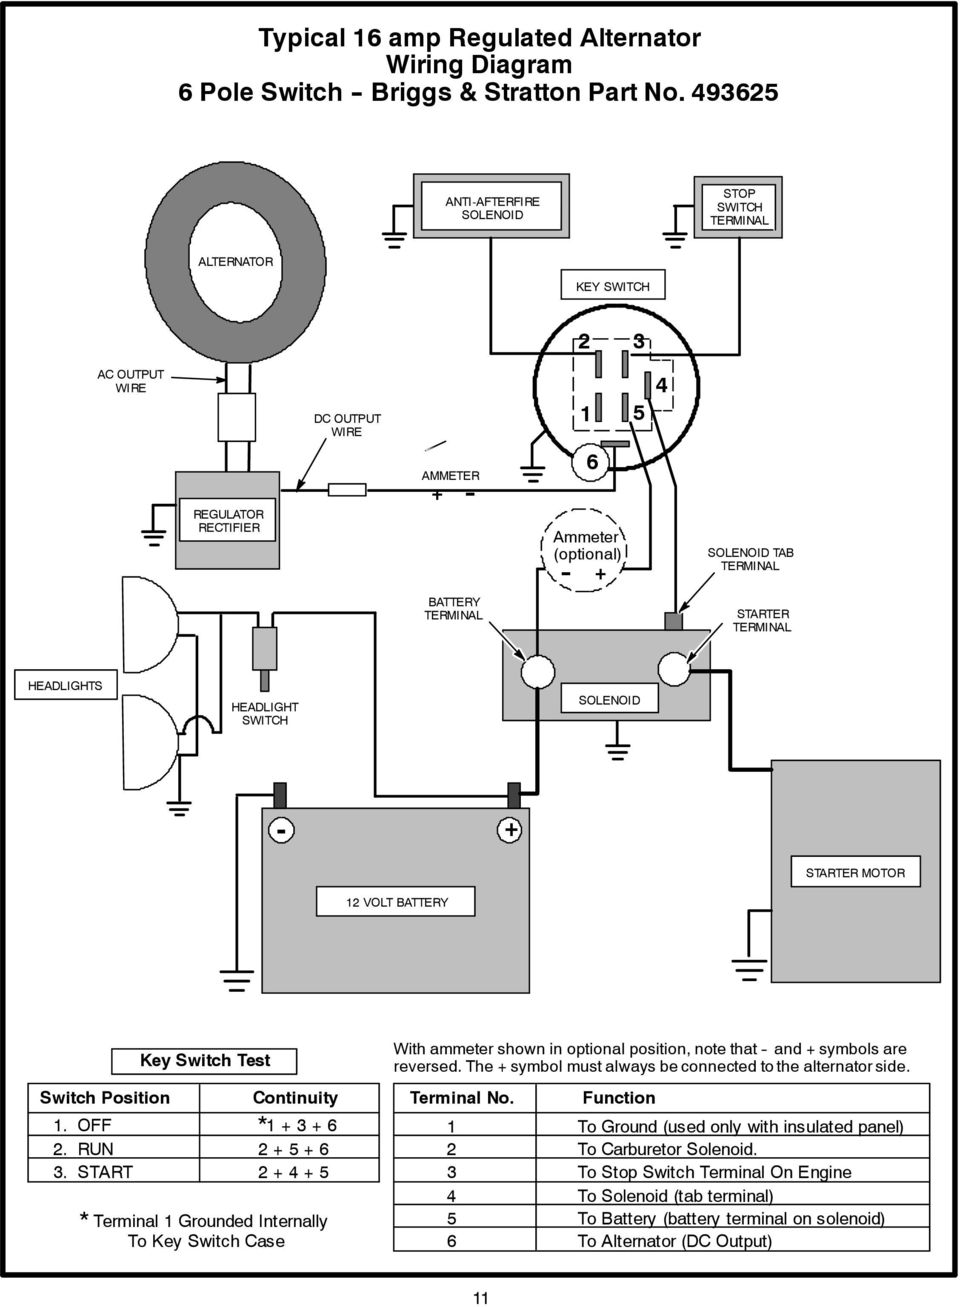 medium resolution of start terminal grounded internally to key 12 typical 6 amp regulated alternator wiring diagram with charge